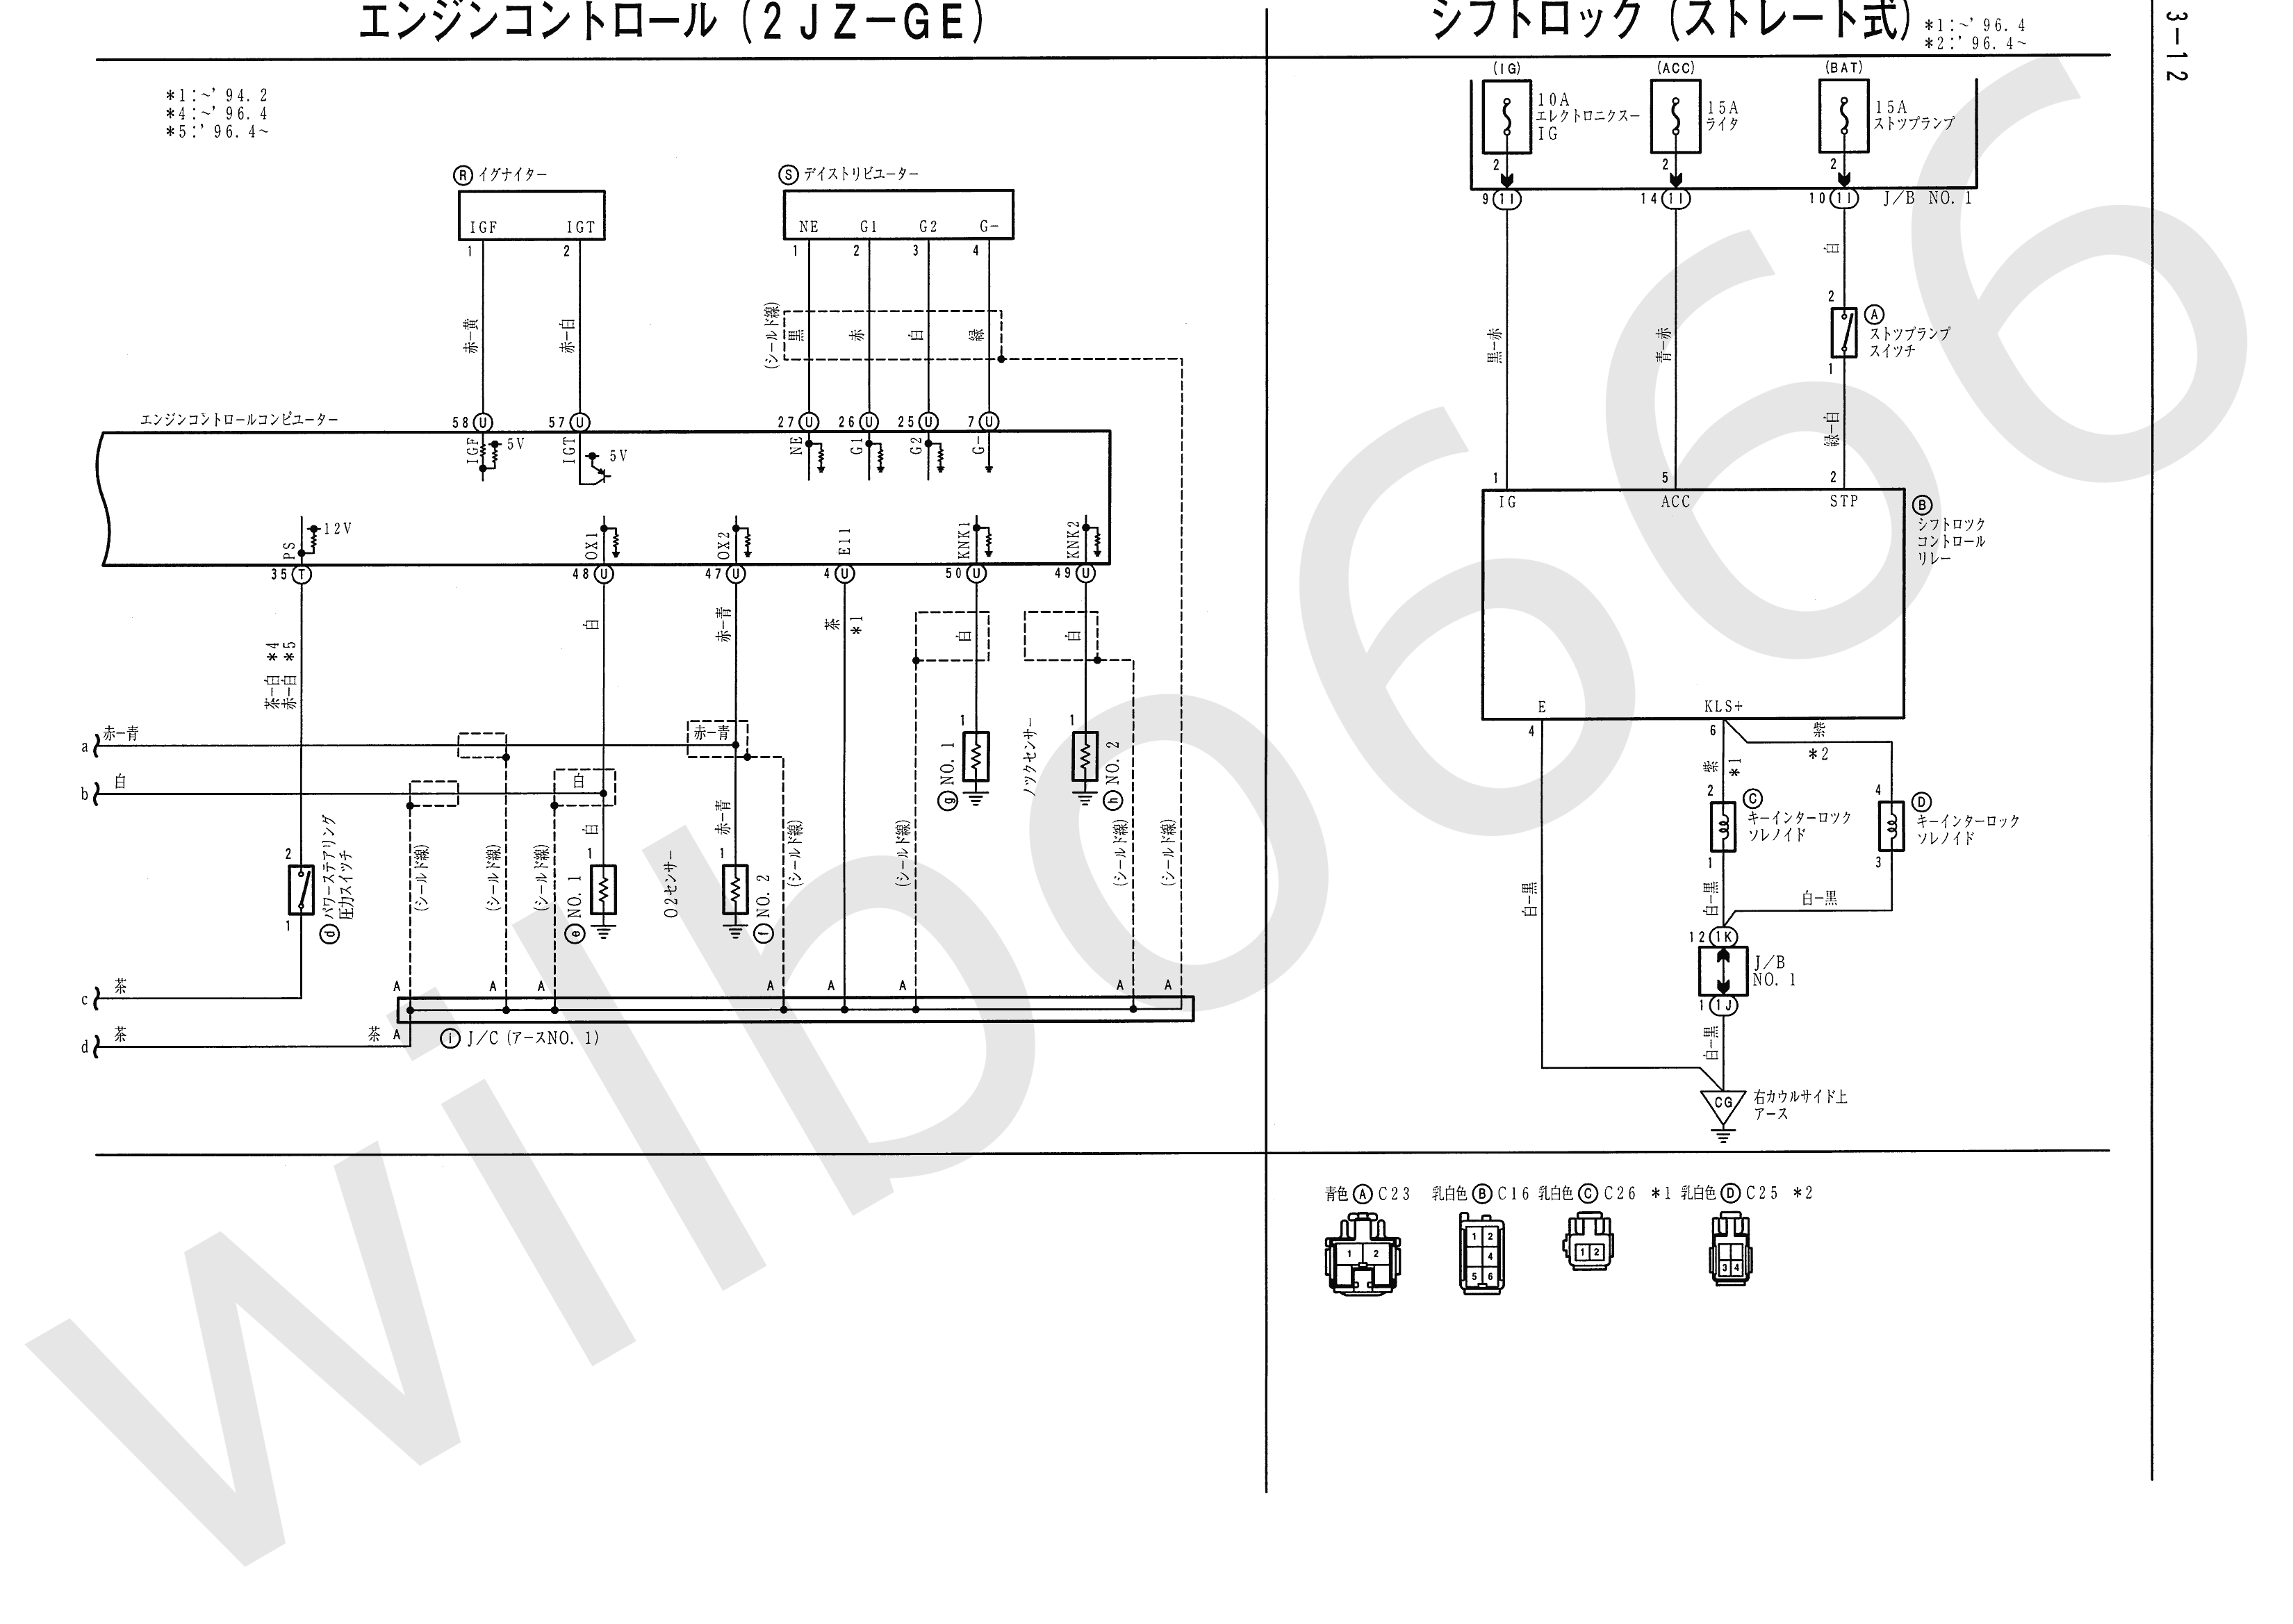 Toyota Supra Ecu Wiring Diagram Library Electrical Book Jza80 6742505